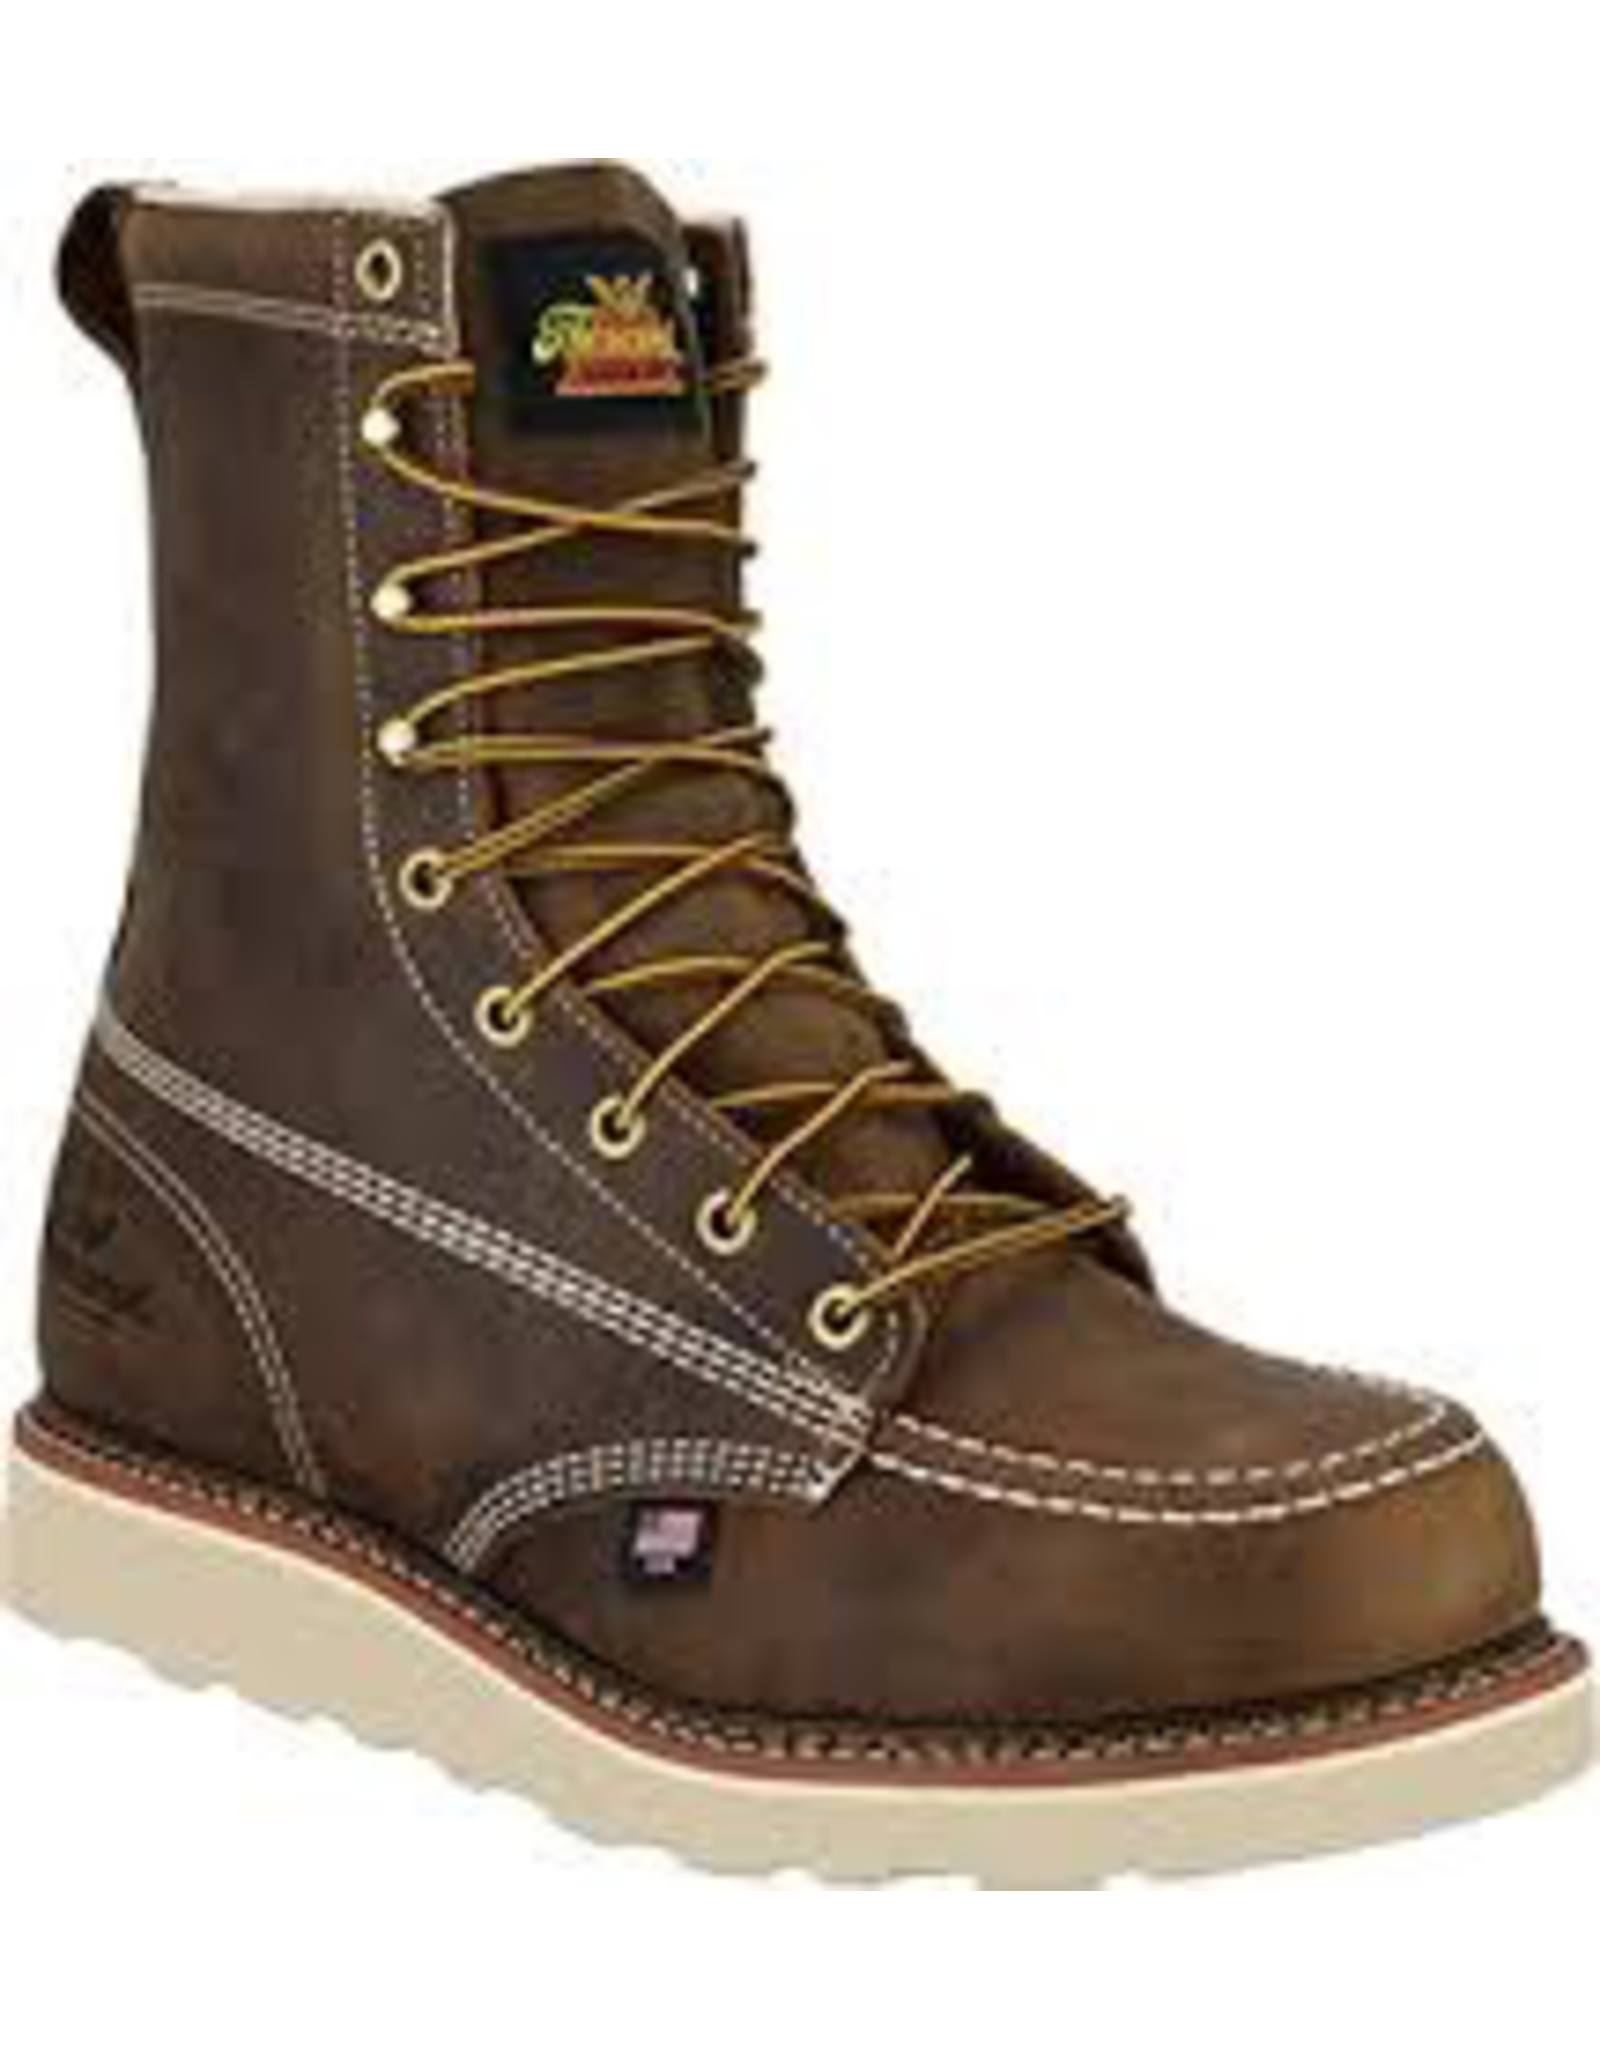 Boots-Men Thorogood 804-4478 8in Safety Moc Toe